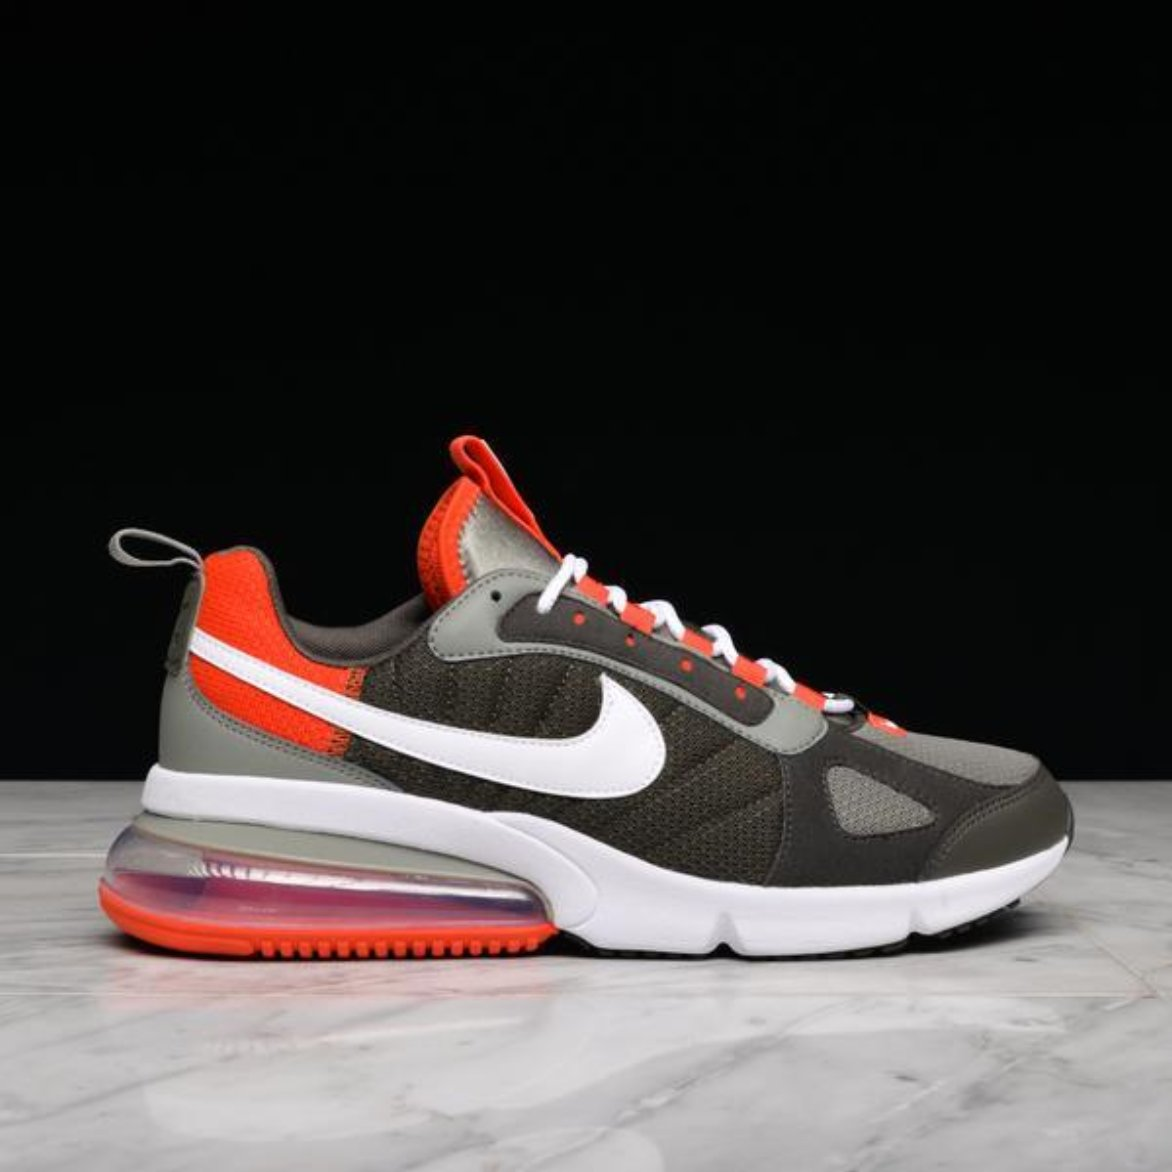 new arrival 4c38a fc9dd AIR MAX 270 FUTURA - DARK STUCCO / NEWSPRINT